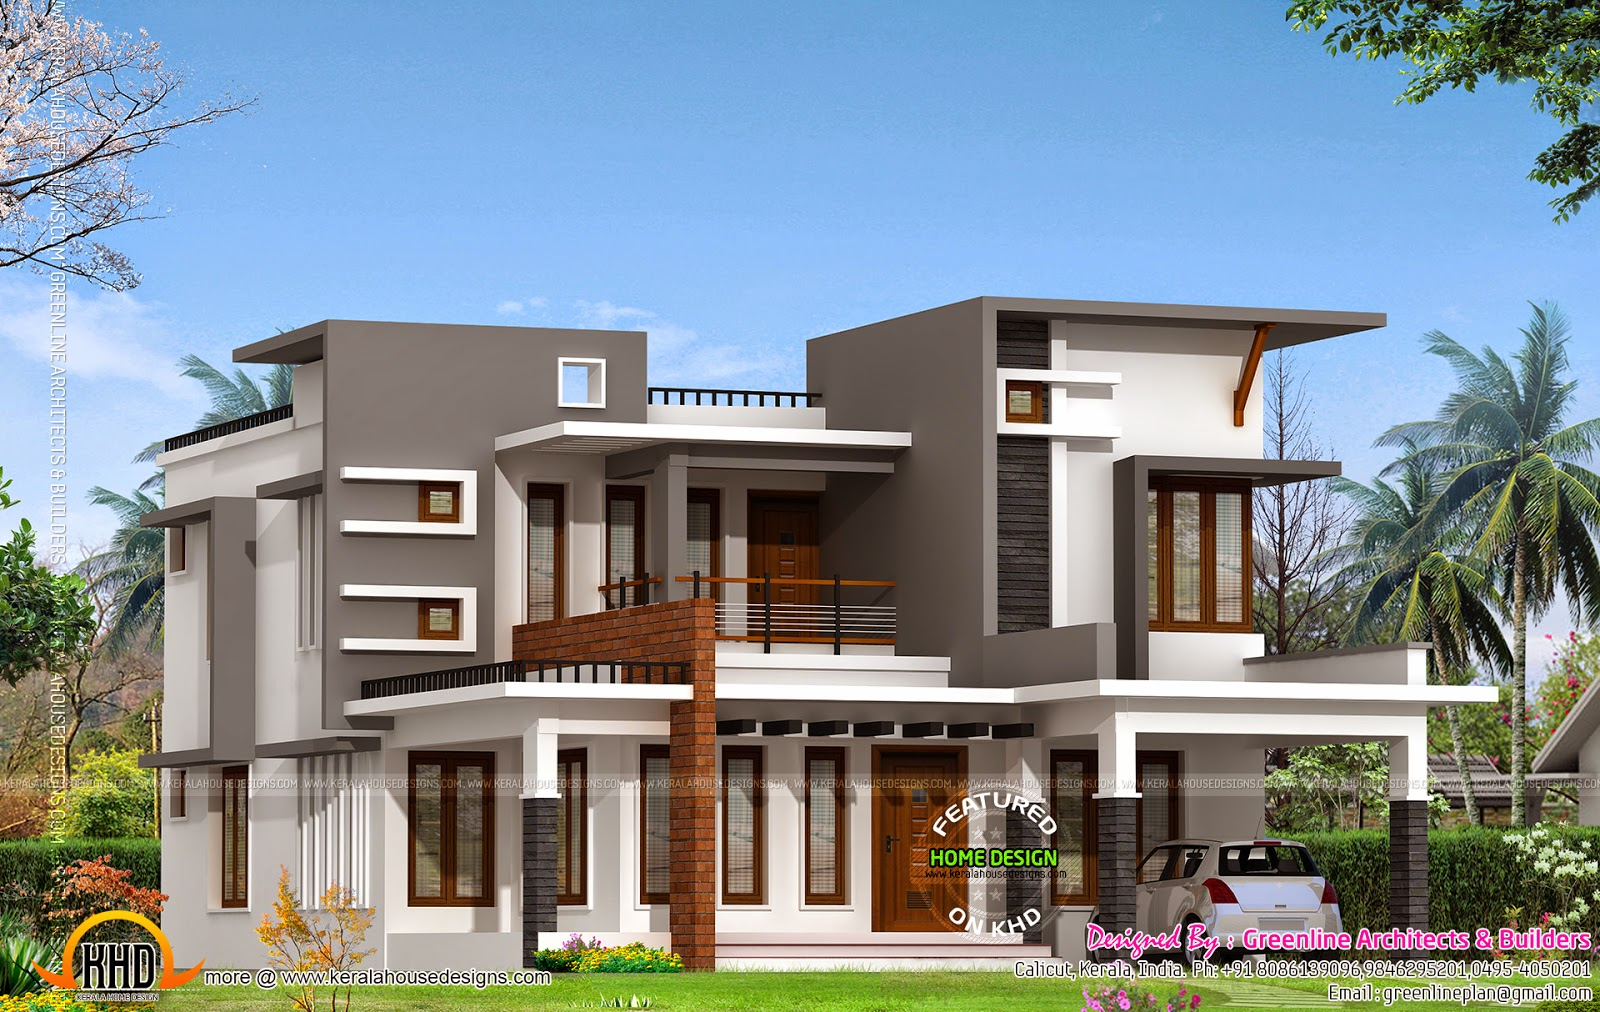 Contemporary house with estimate cost 28 lakhs kerala Estimate cost of house